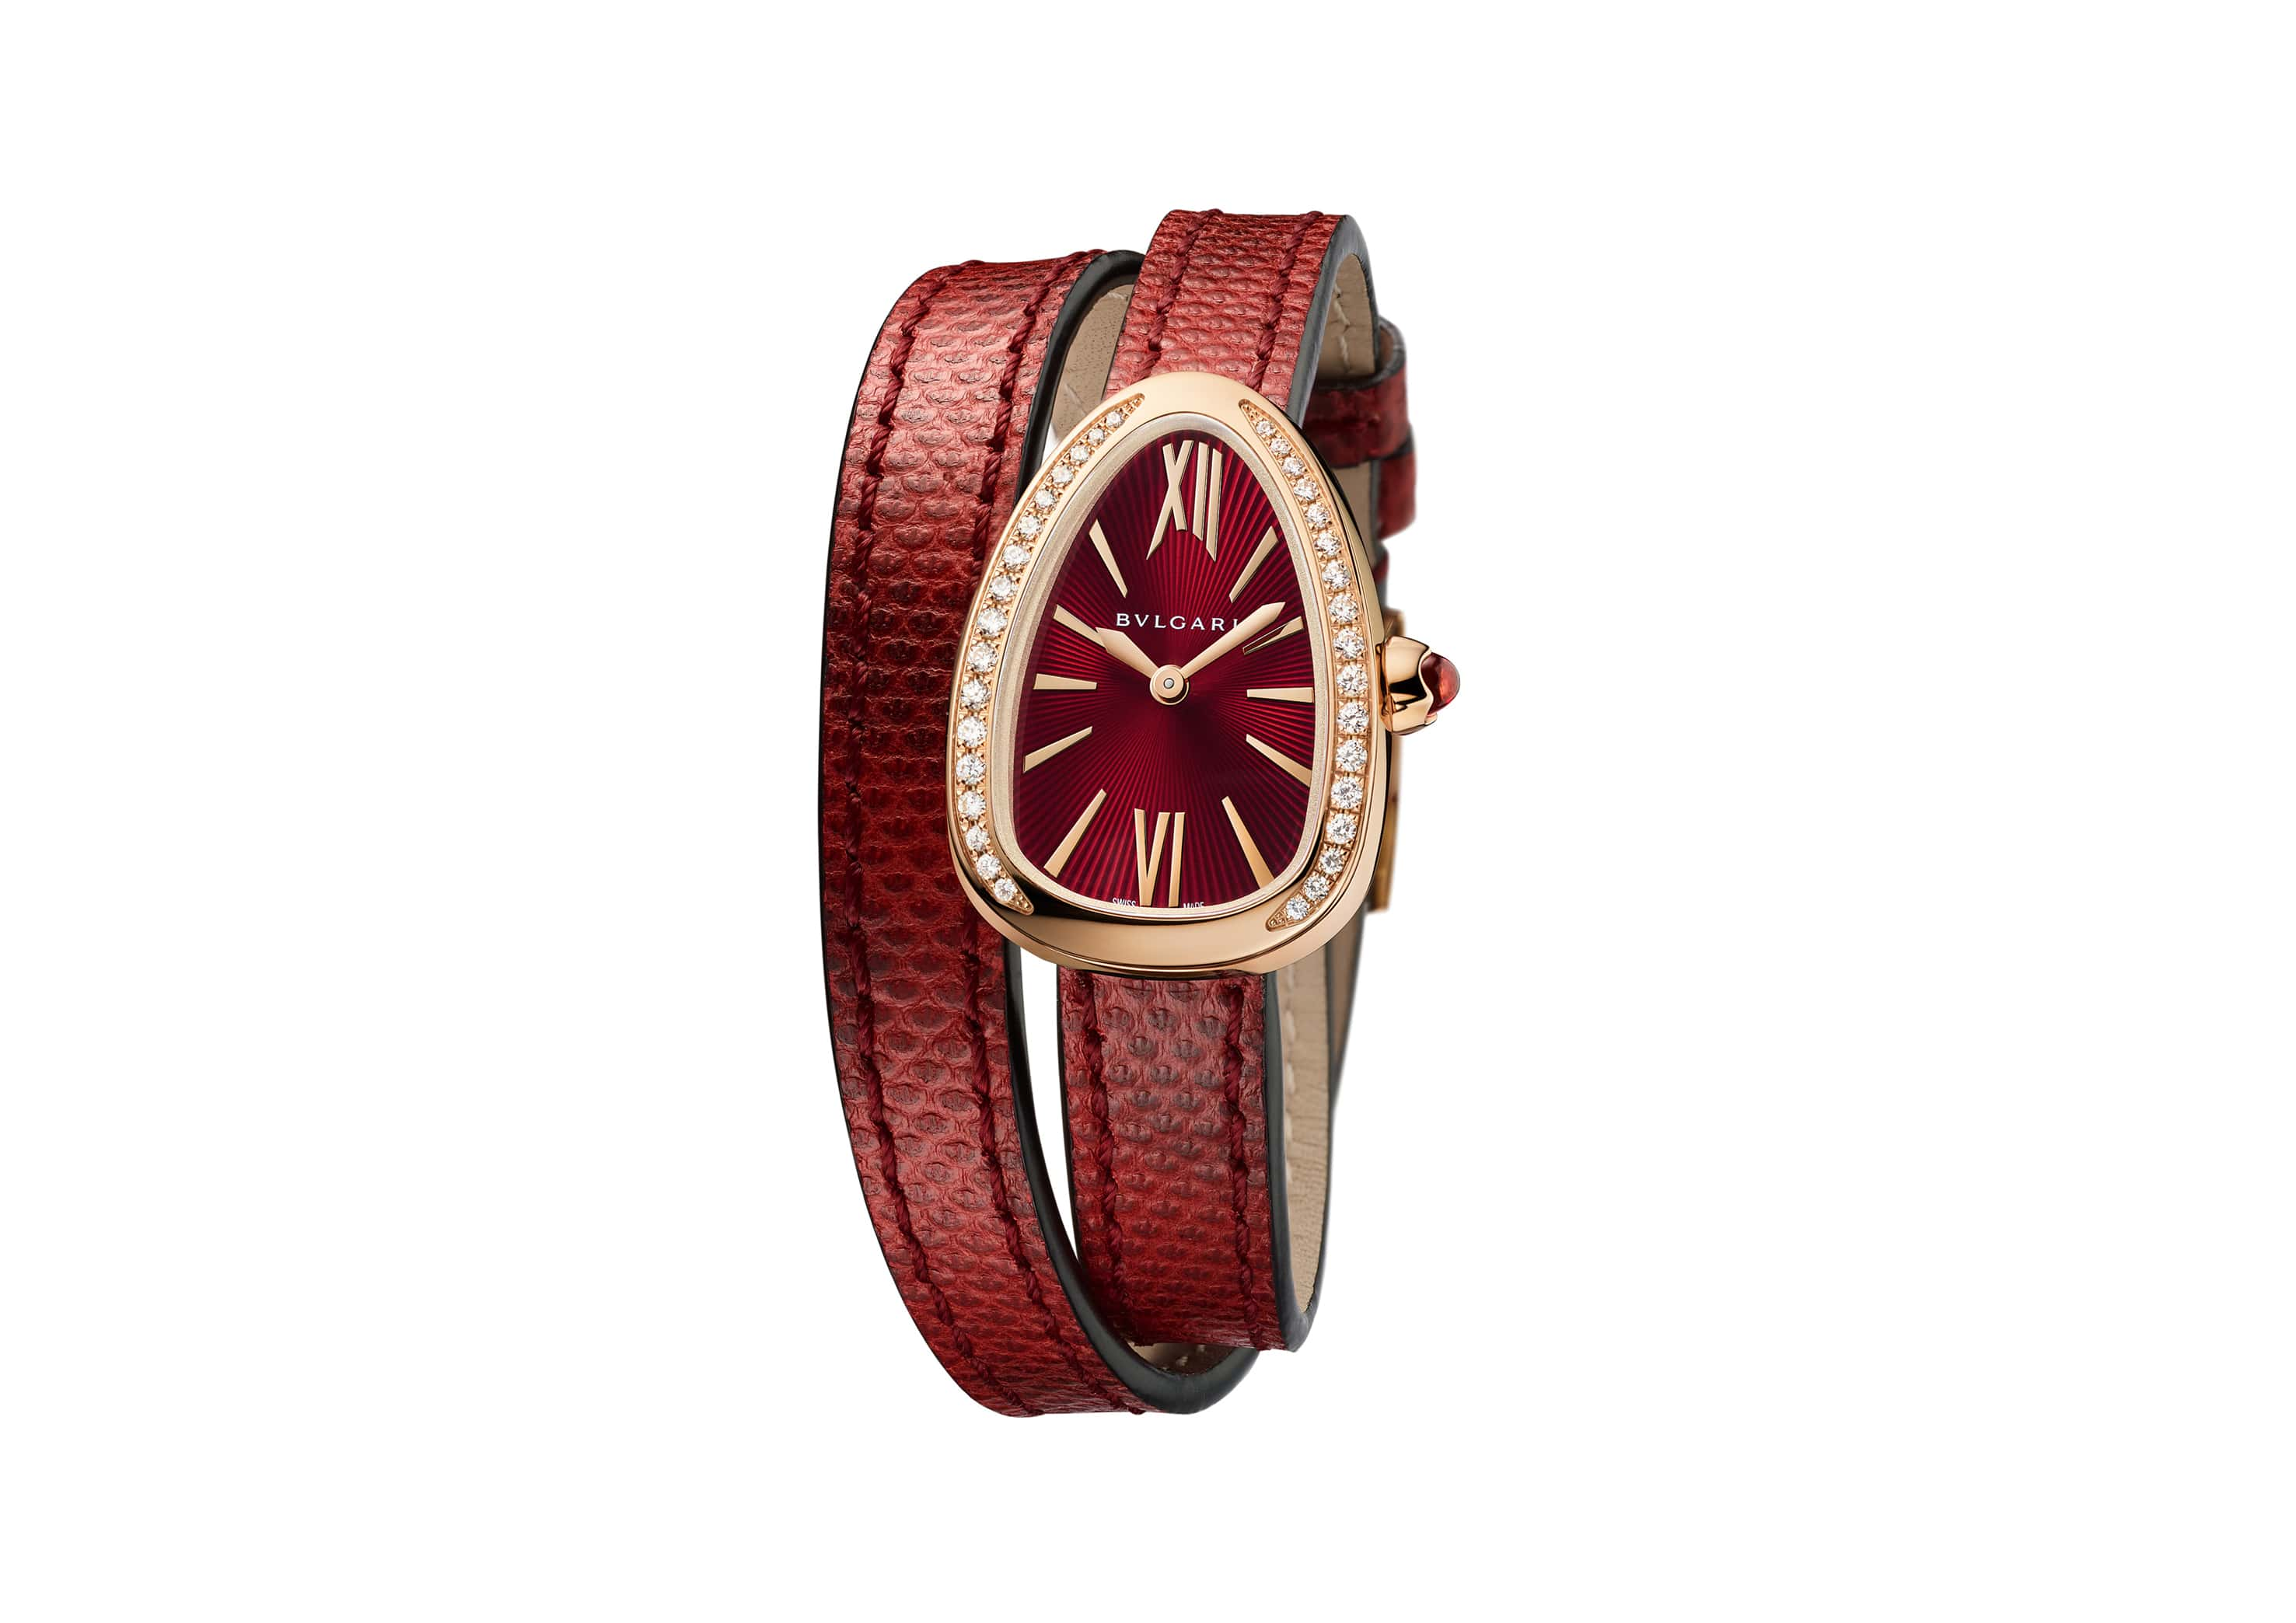 Bulgari's Serpenti watch can now be customised